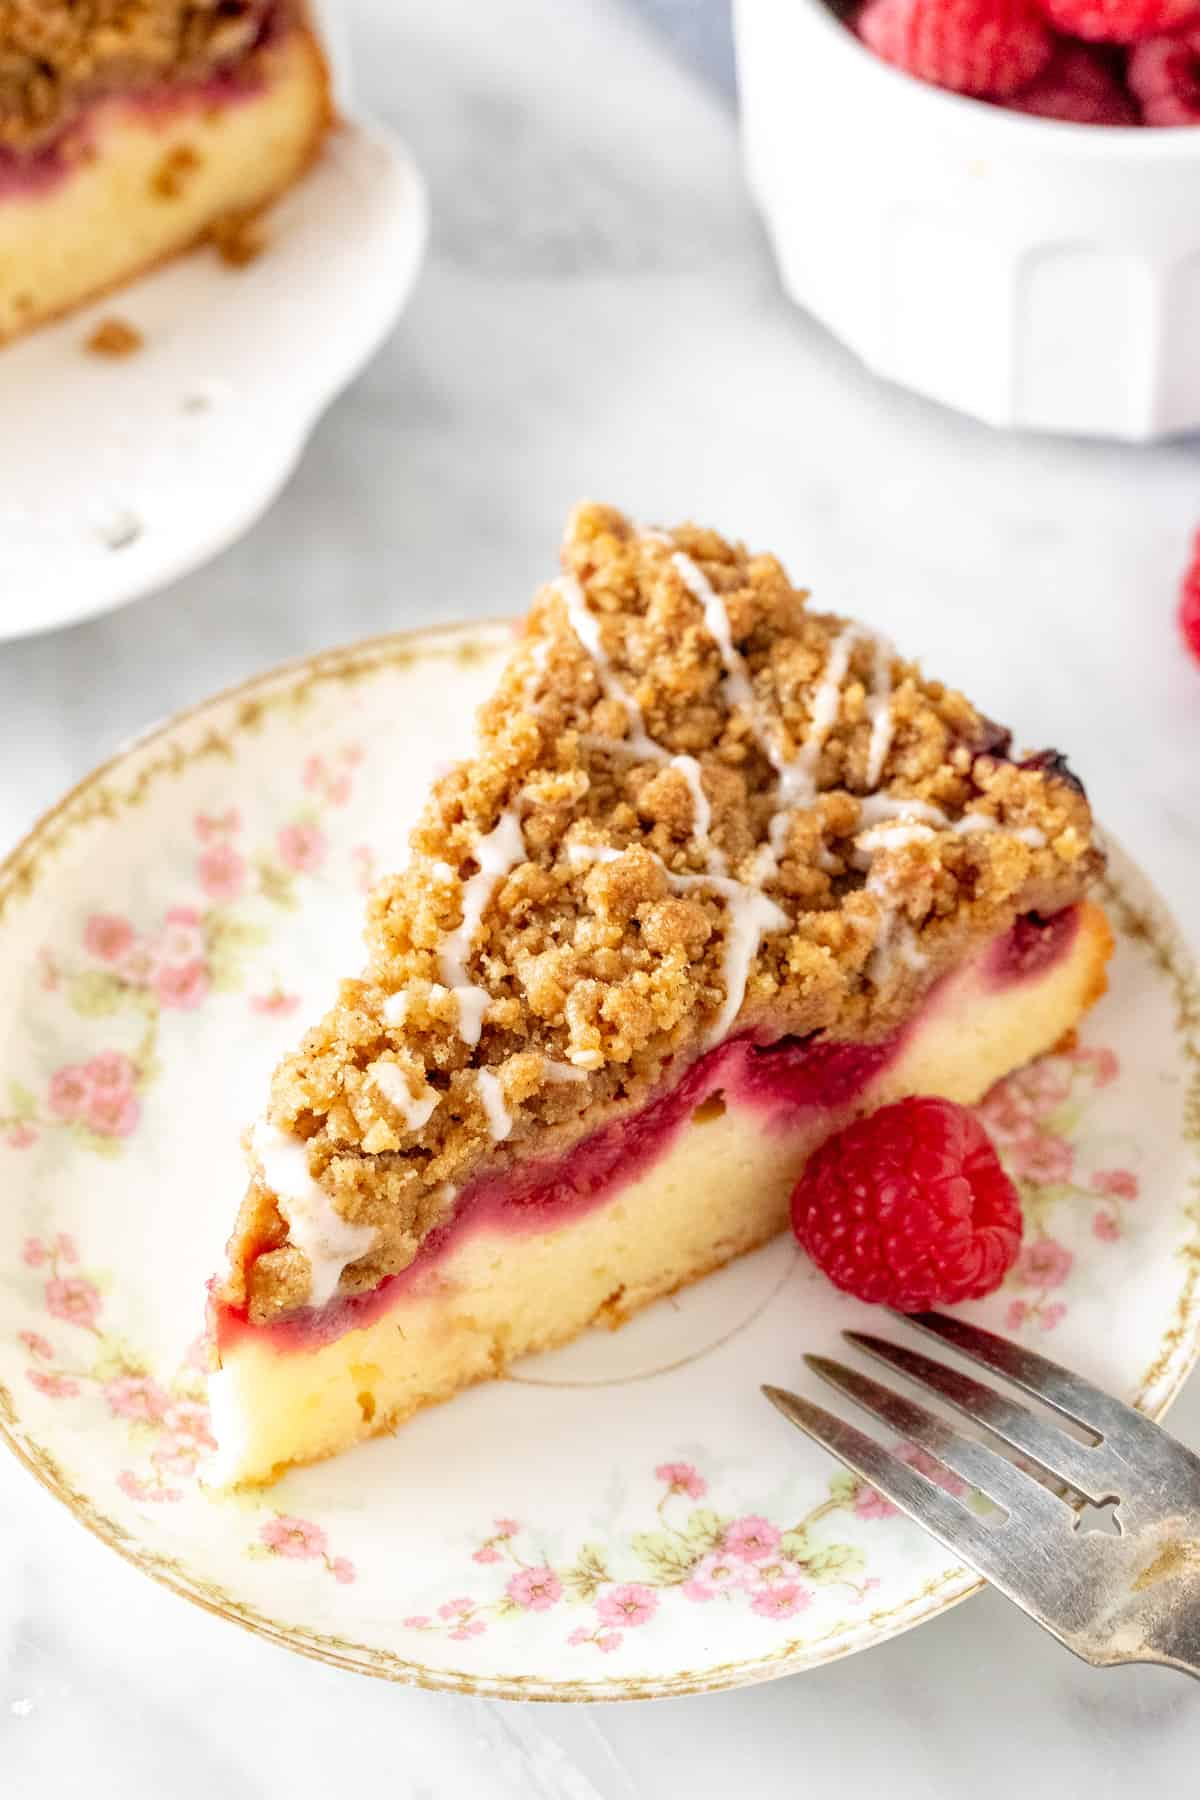 Slice of streusel topped cake with a layer of raspberries.